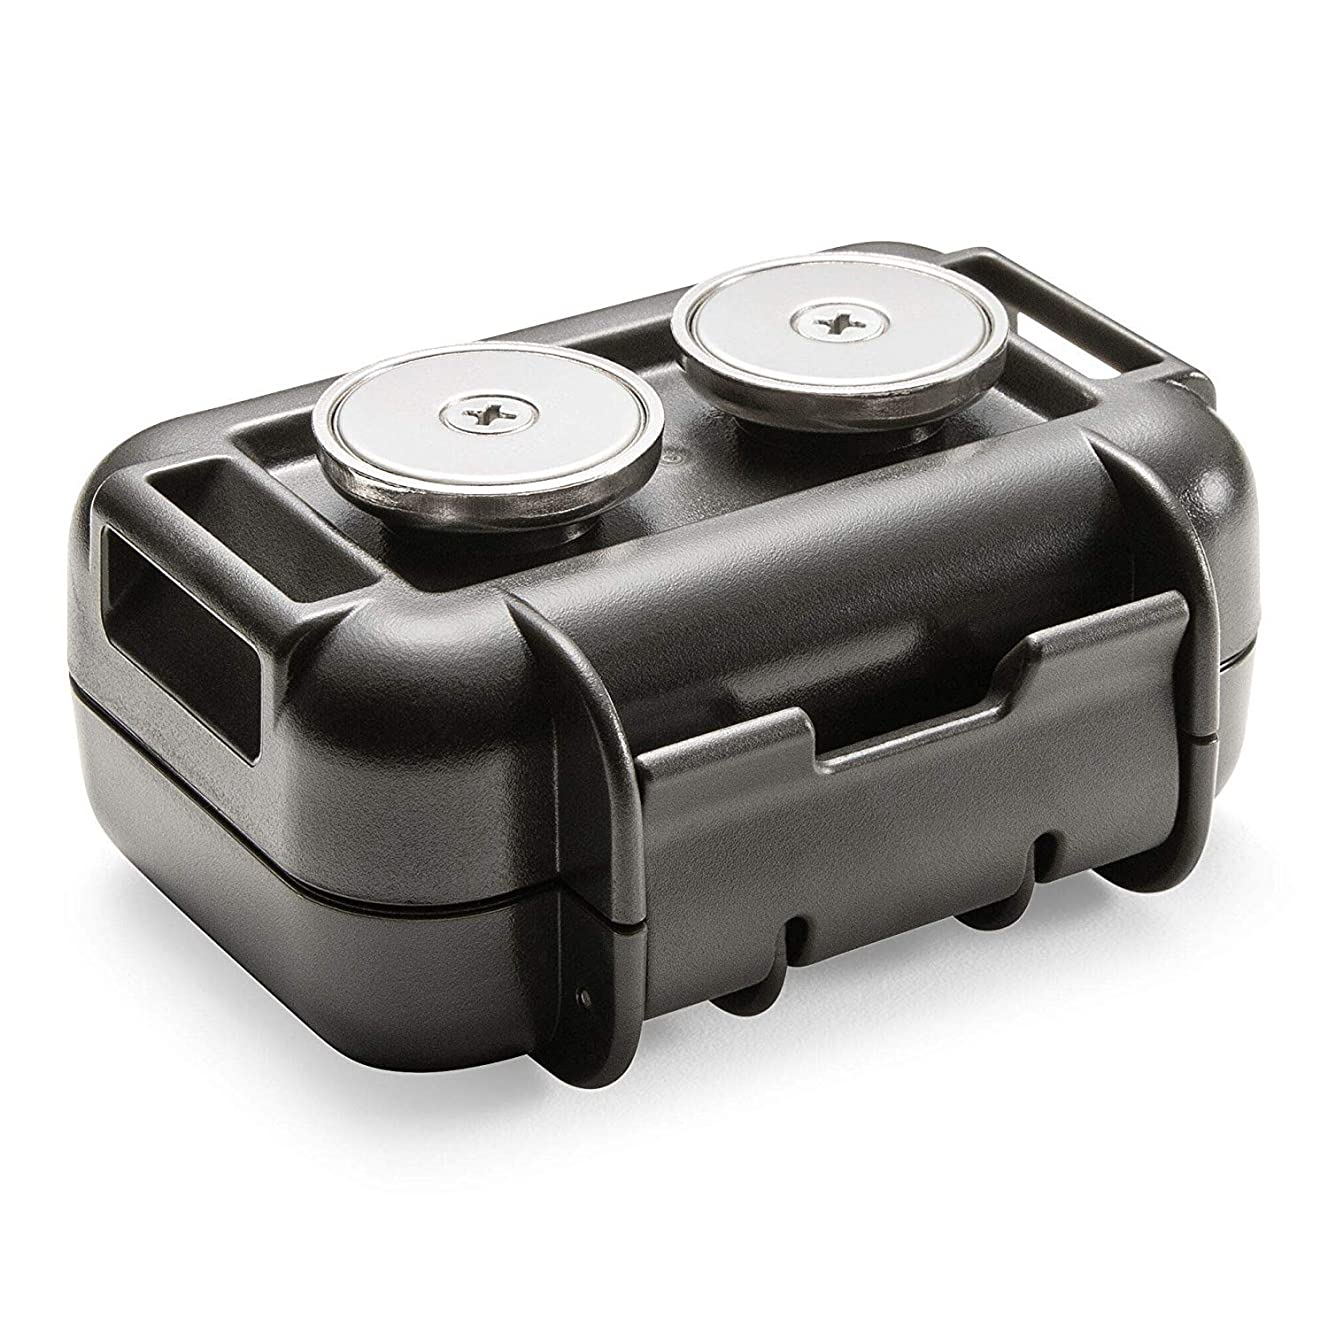 Spy Tec M2 Waterproof Weatherproof Magnetic Case for STI GL300 Real-Time GPS Trackers